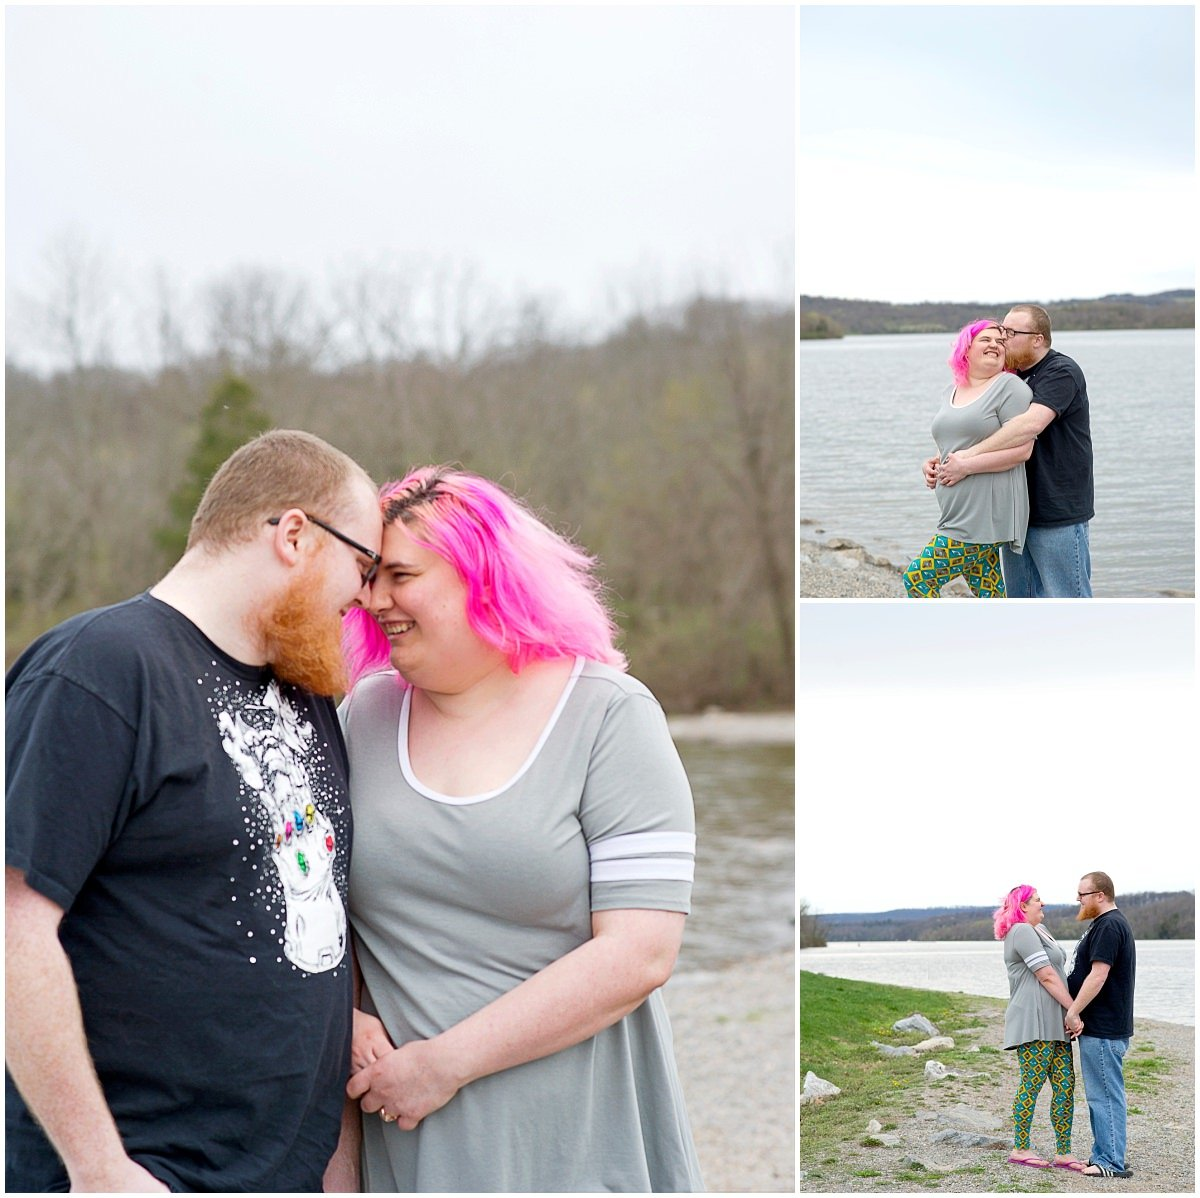 Berks County Wedding Photographe Blue Marsh Lake Engagement Photos | K. Moss Photography